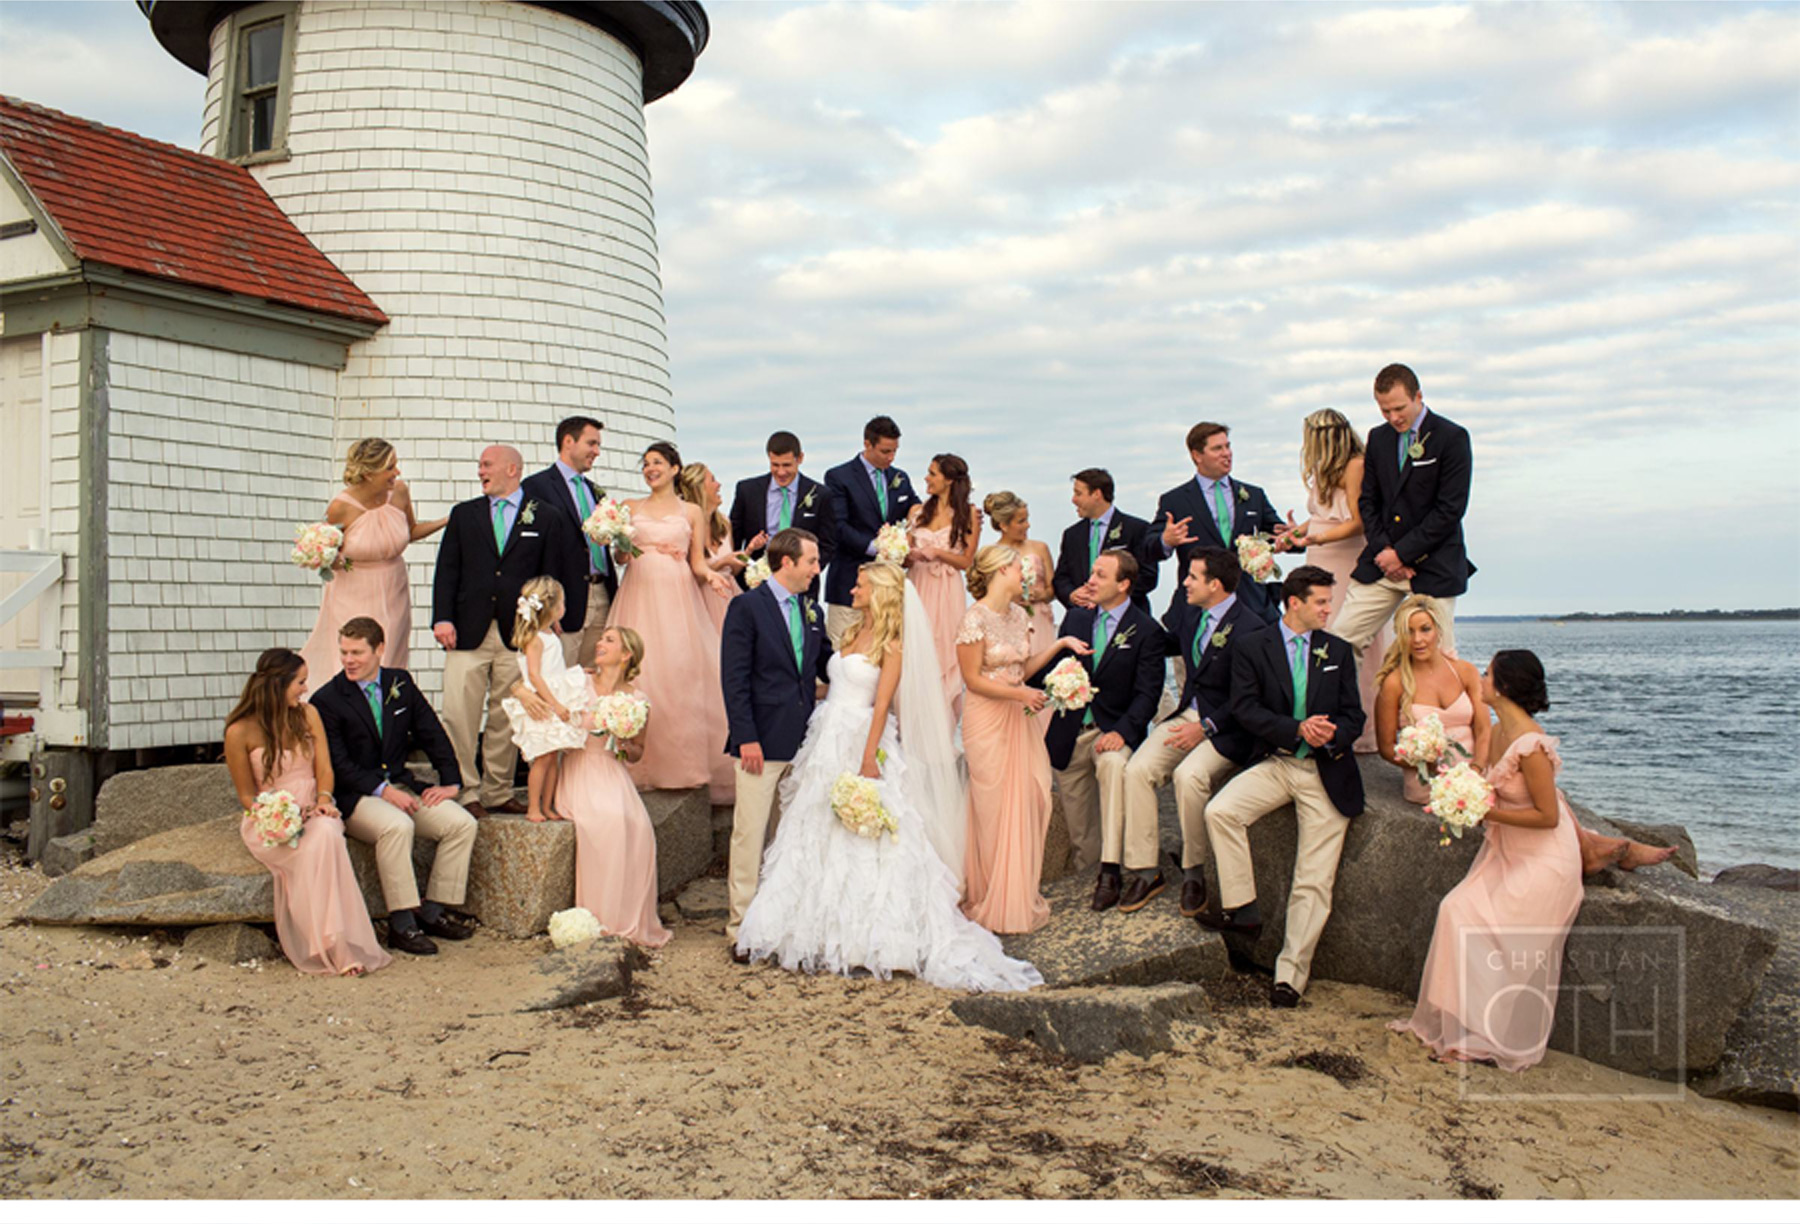 Our Muse - Navy Nantucket Wedding - Be inspired by Jessica & John's navy blue Nantucket wedding - wedding, nantucket, lighthouse, vintage, car, group, escort cards, ceci new york, calligraphy, tent, lanterns, massachusetts, new england, nautical